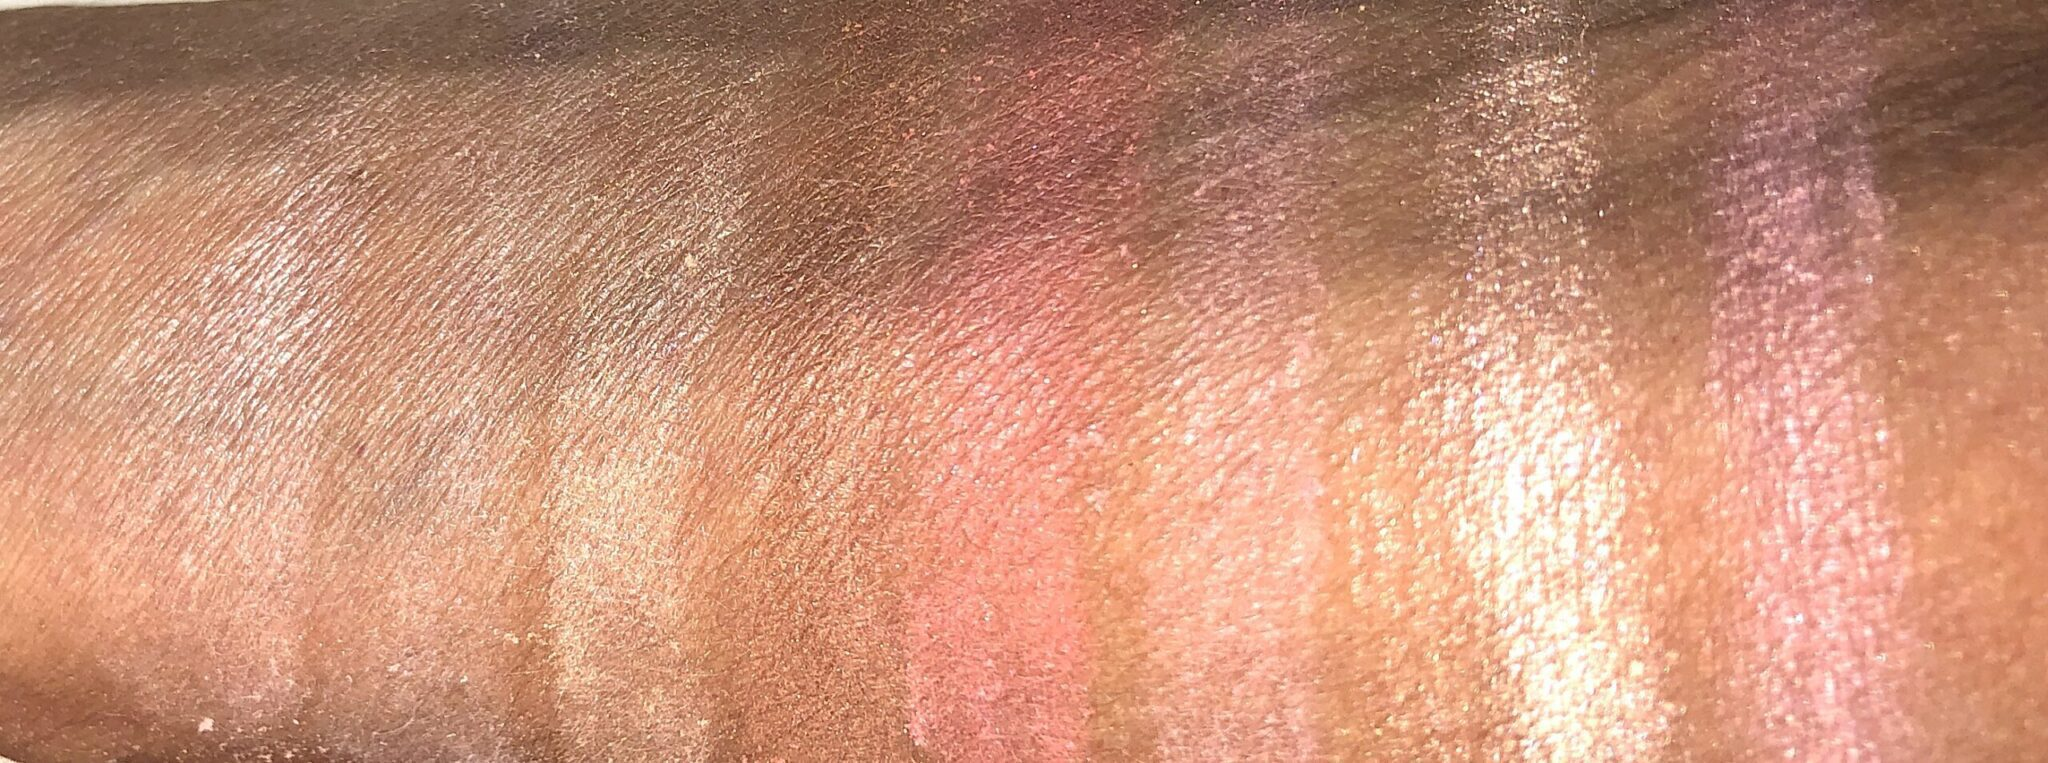 SWATCHES DIM LIGHT AND DIFFUSED LIGHT FINISHER POWDER, STROBE LIGHT HIGHLIGHTER, BRONZER FOR CONTOUR AND DEFINITION, BLUSH AND BLUSH FOR ROSY CHEEKS STROBE APPLIED WET, PLUM BLUSH APPLIED WET